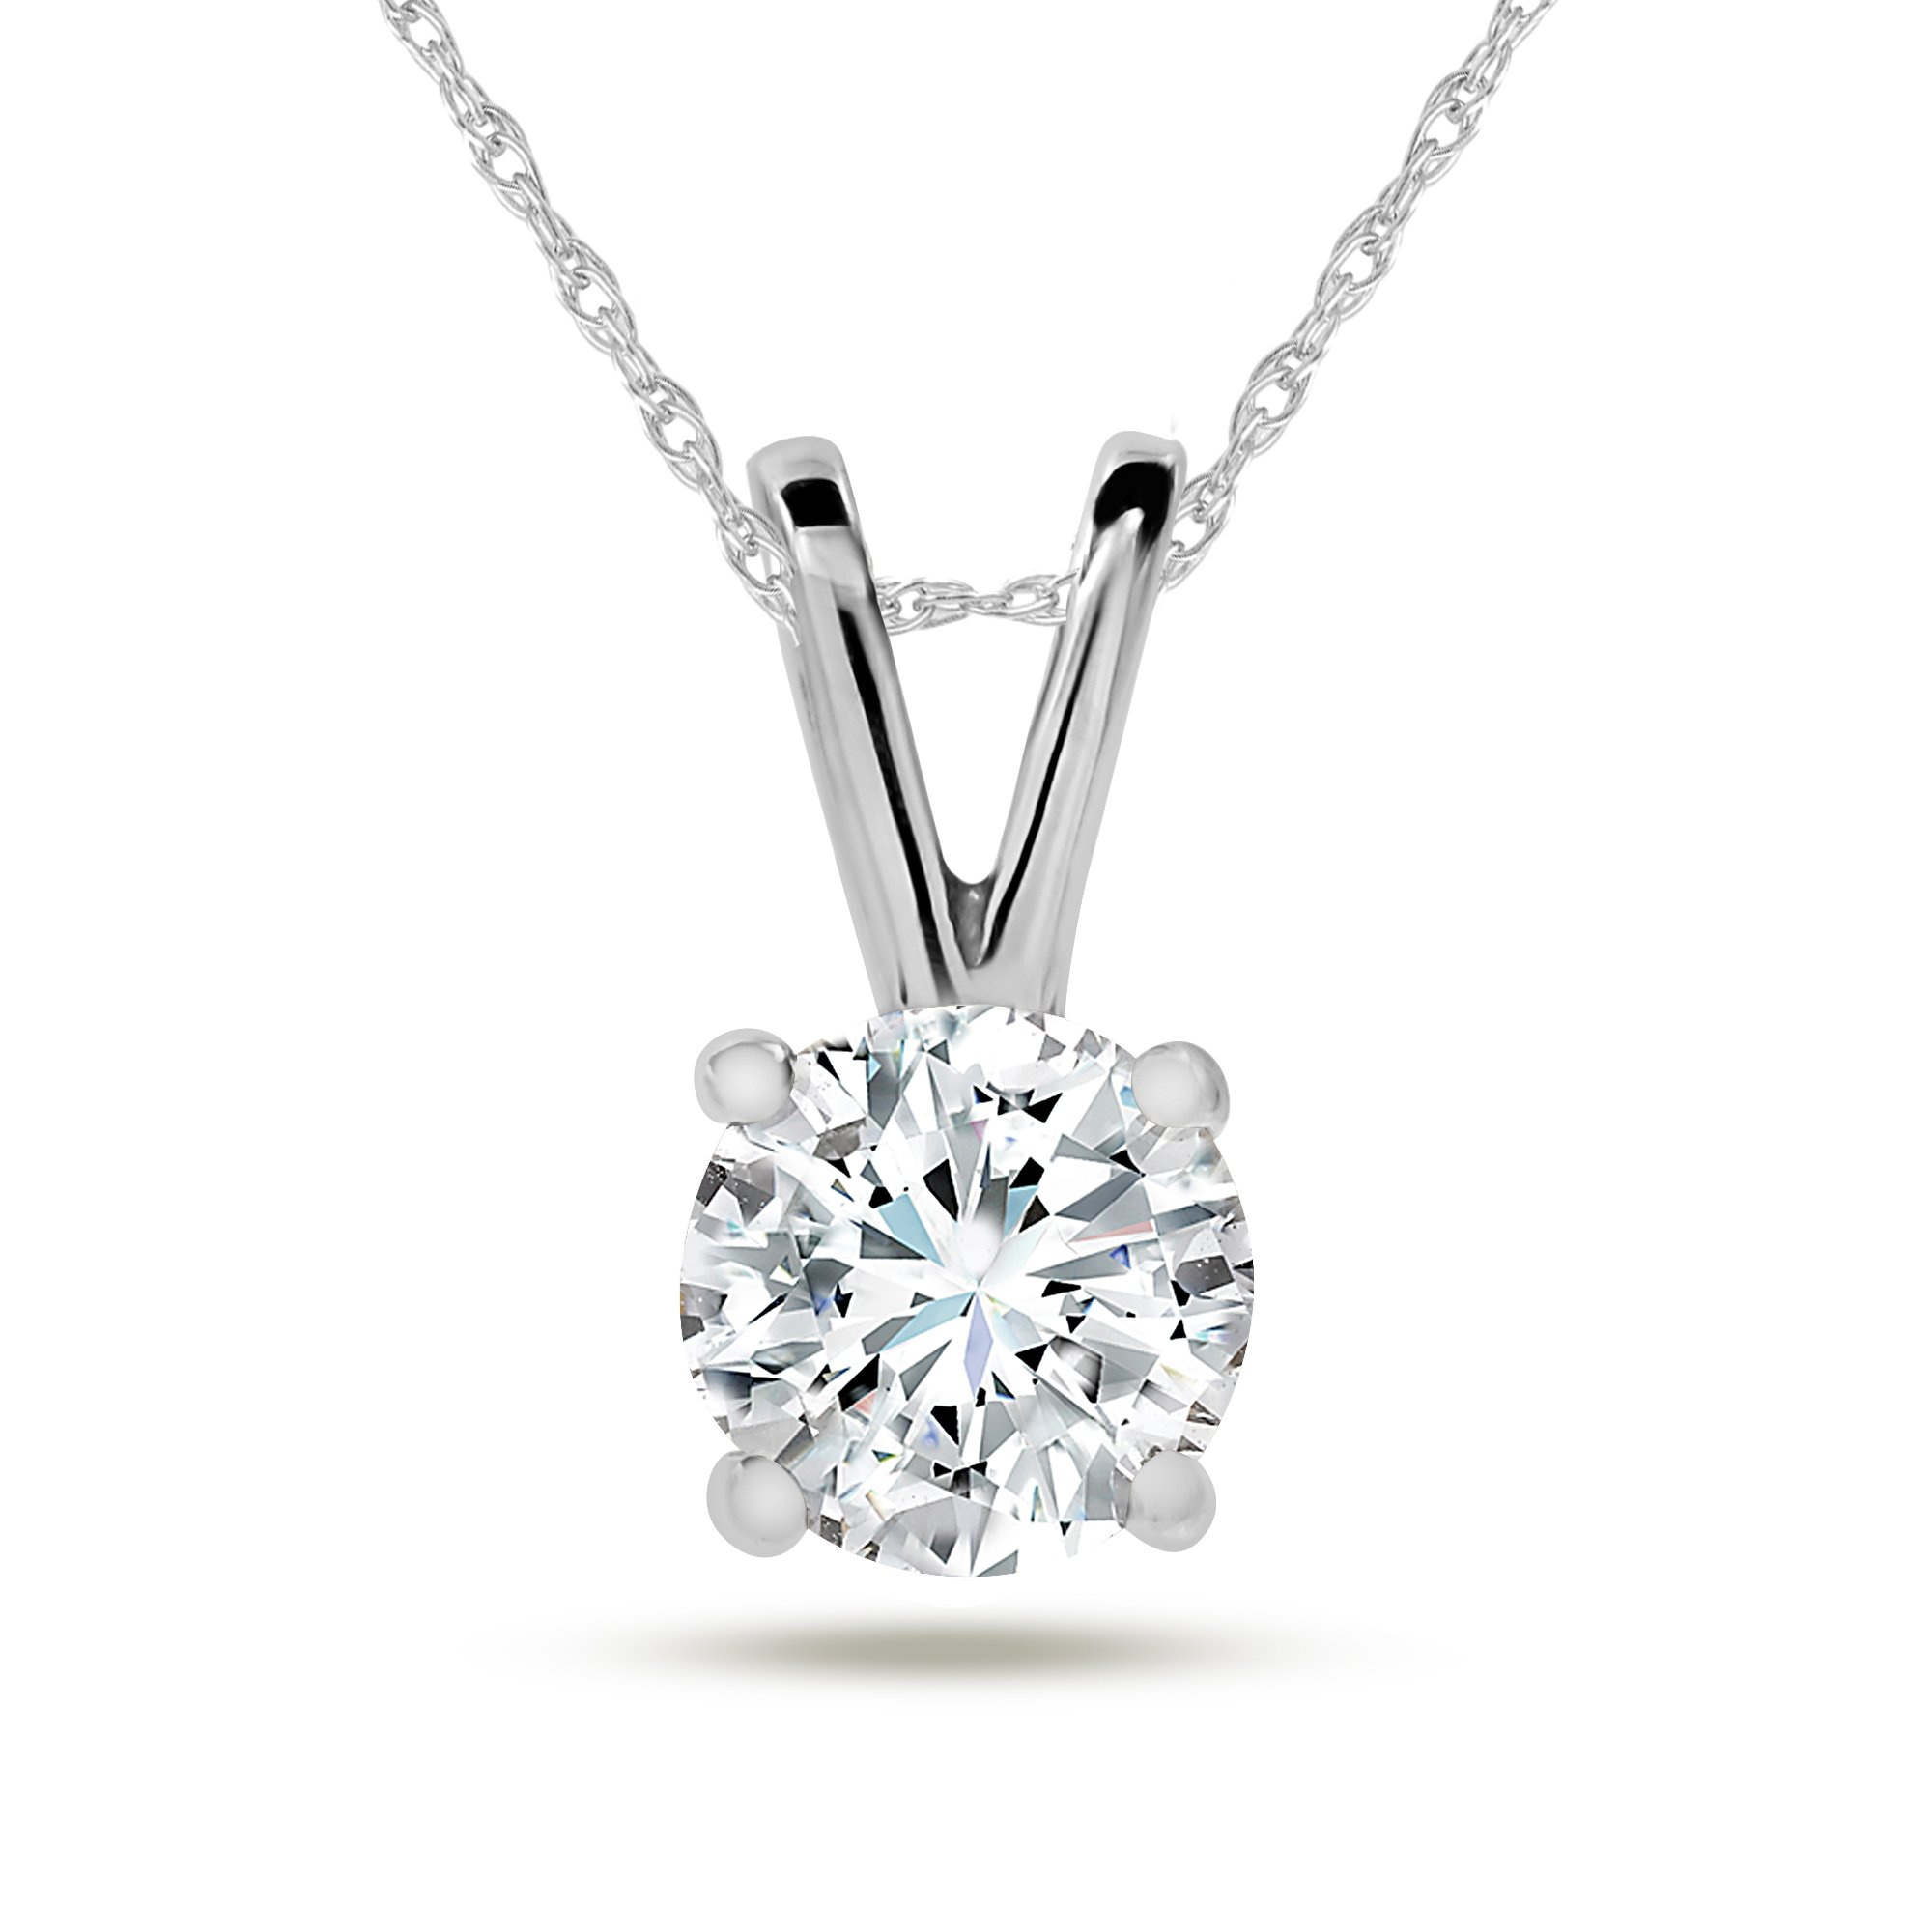 Diamond Pendant Necklace for Women in 14k White - Yellow Gold 18 inch Chain IGI Certified H-I I1 0.22ct - 1.00ct